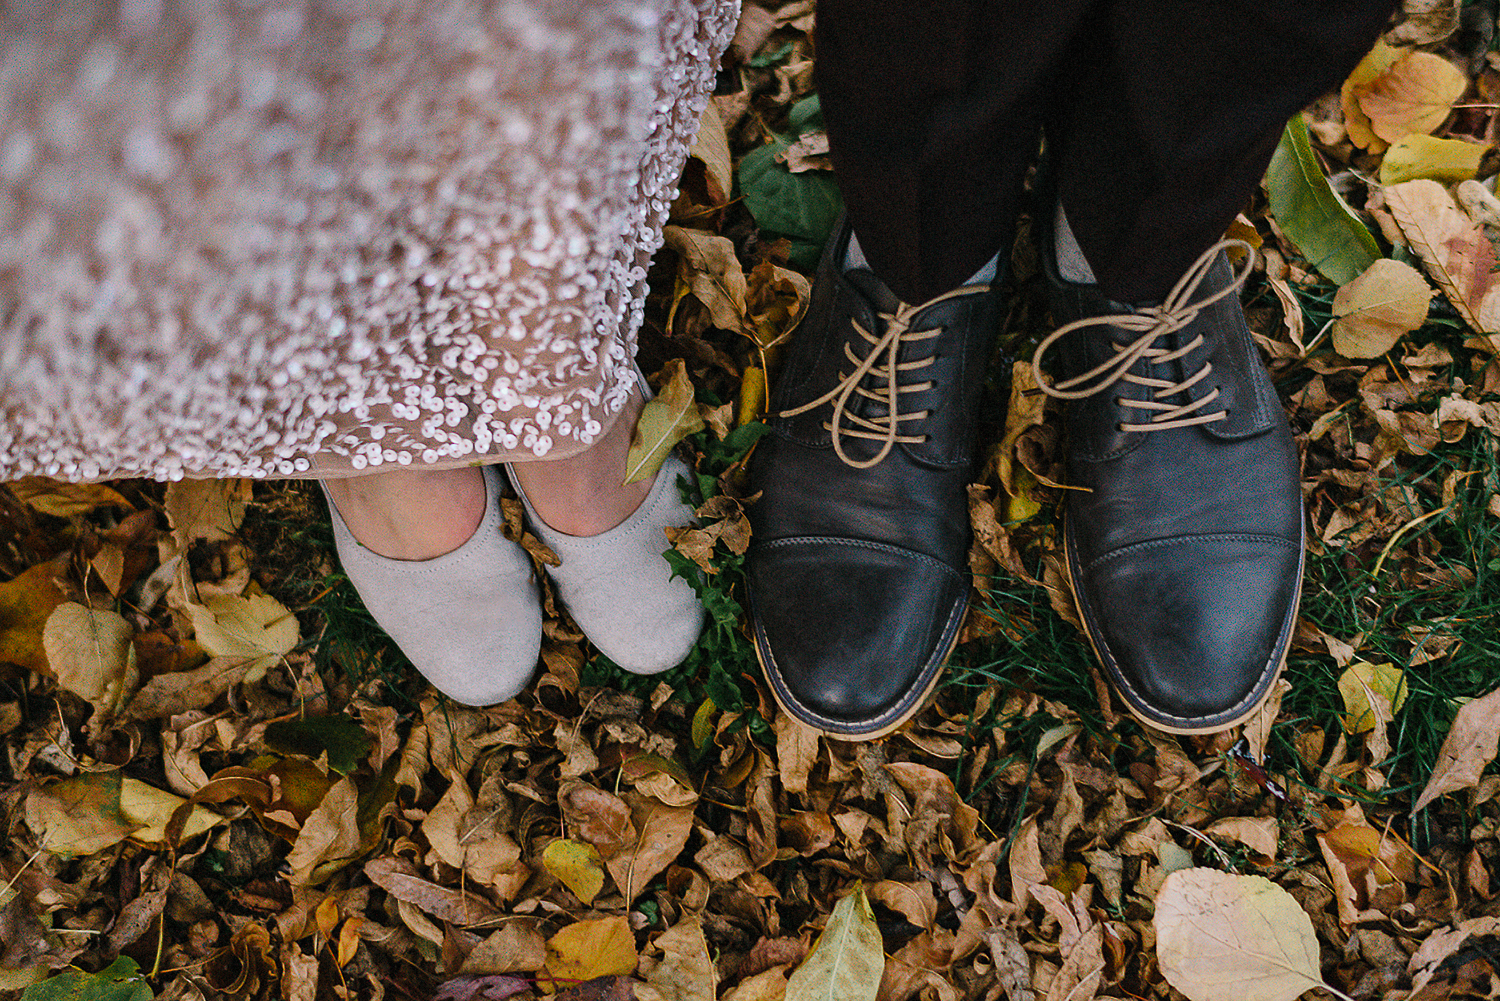 40-Best-Elopement-Photographers-Toronto-Fall-Wedding-Elopement-Modern-Vintage-Hipster-Beautiful-Groom-and-Bride-Shoes-in-Leaves.JPG